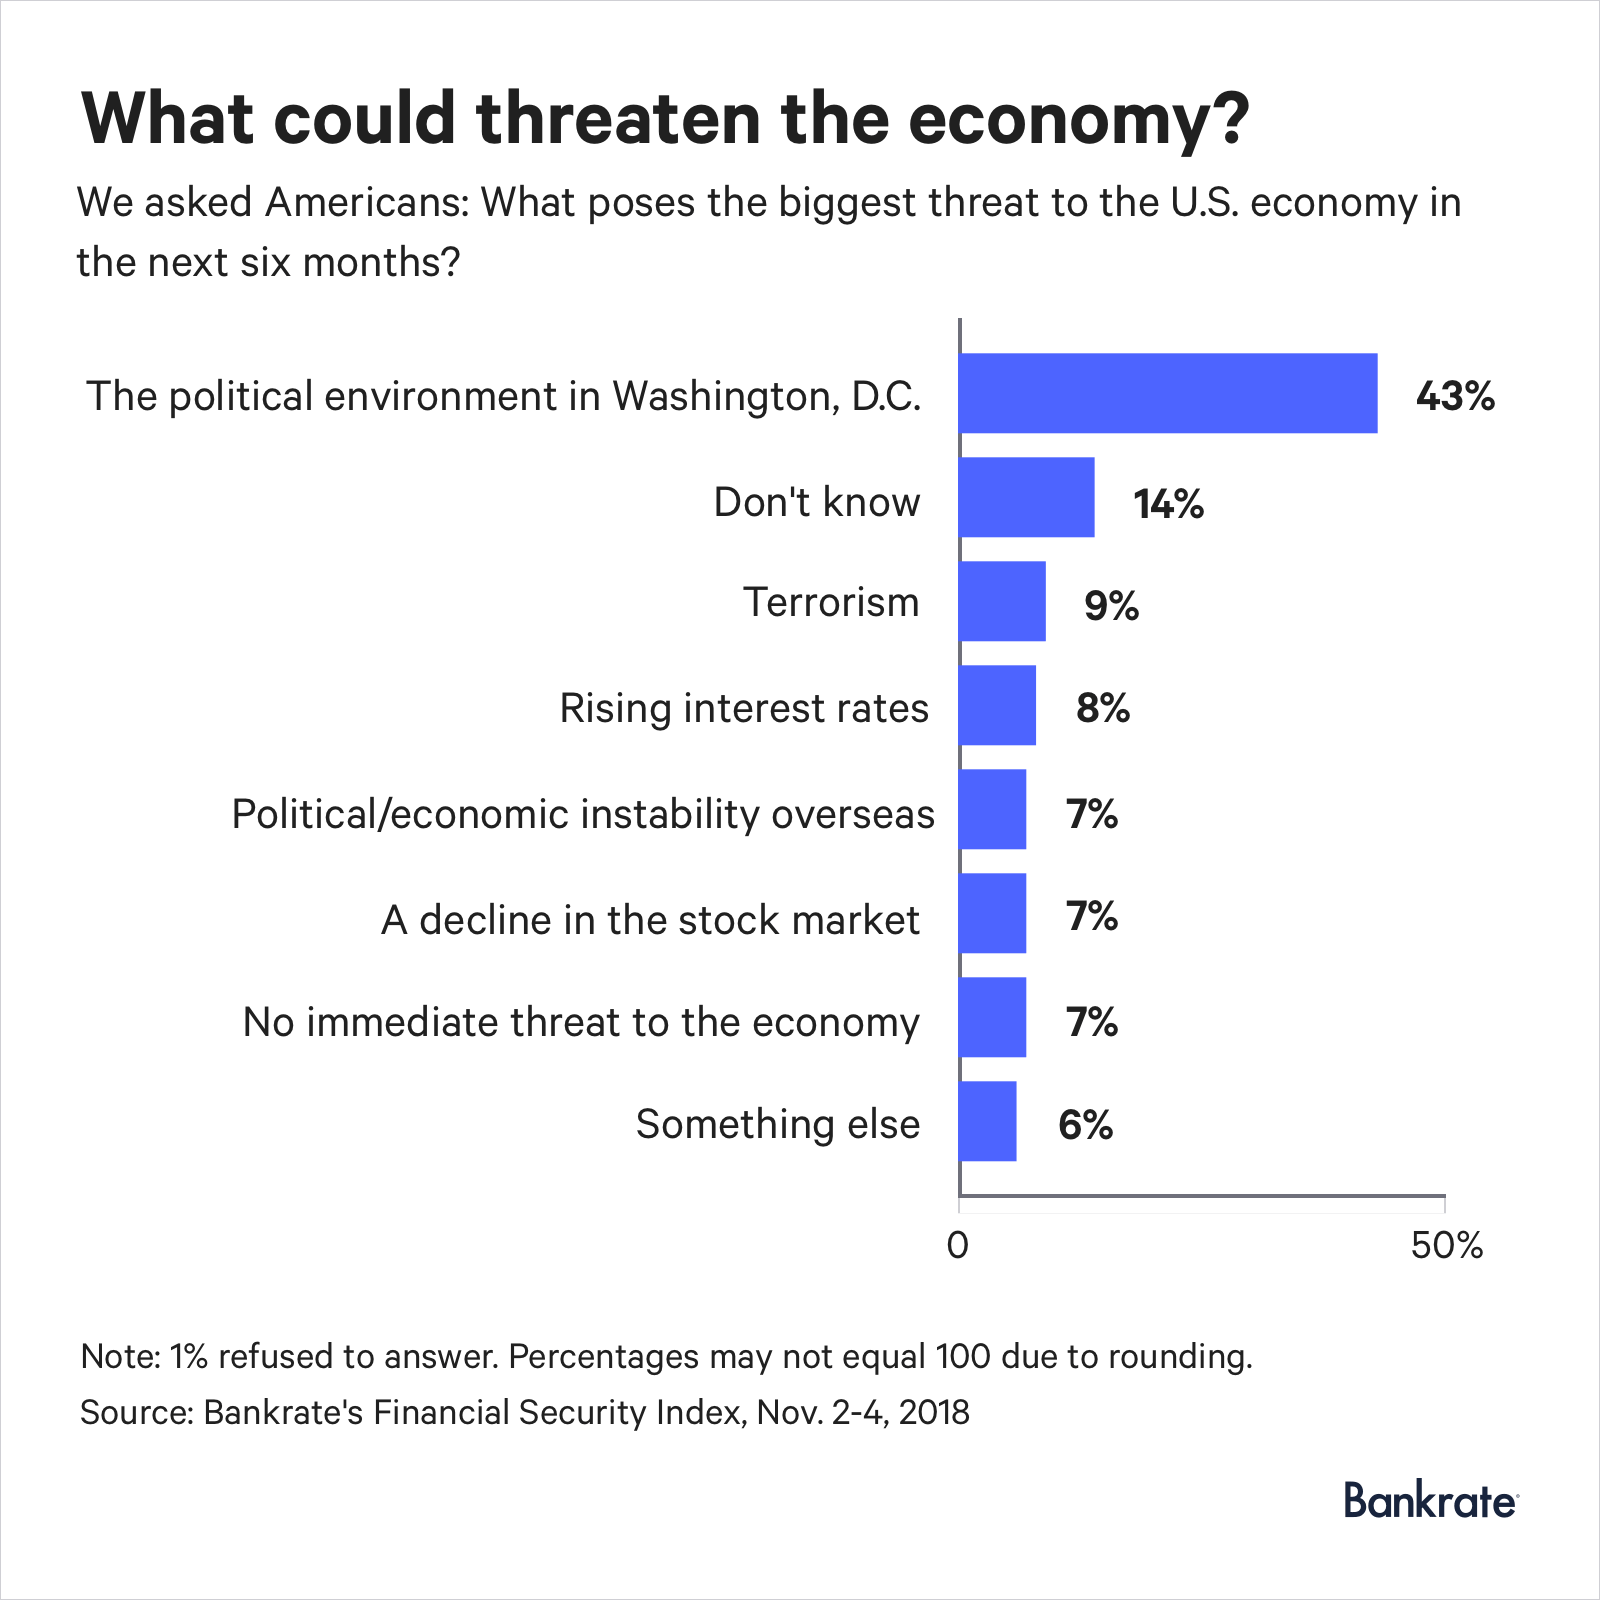 43% of Americans think the political environment in Washington, D.C. poses the biggest threat to the economy